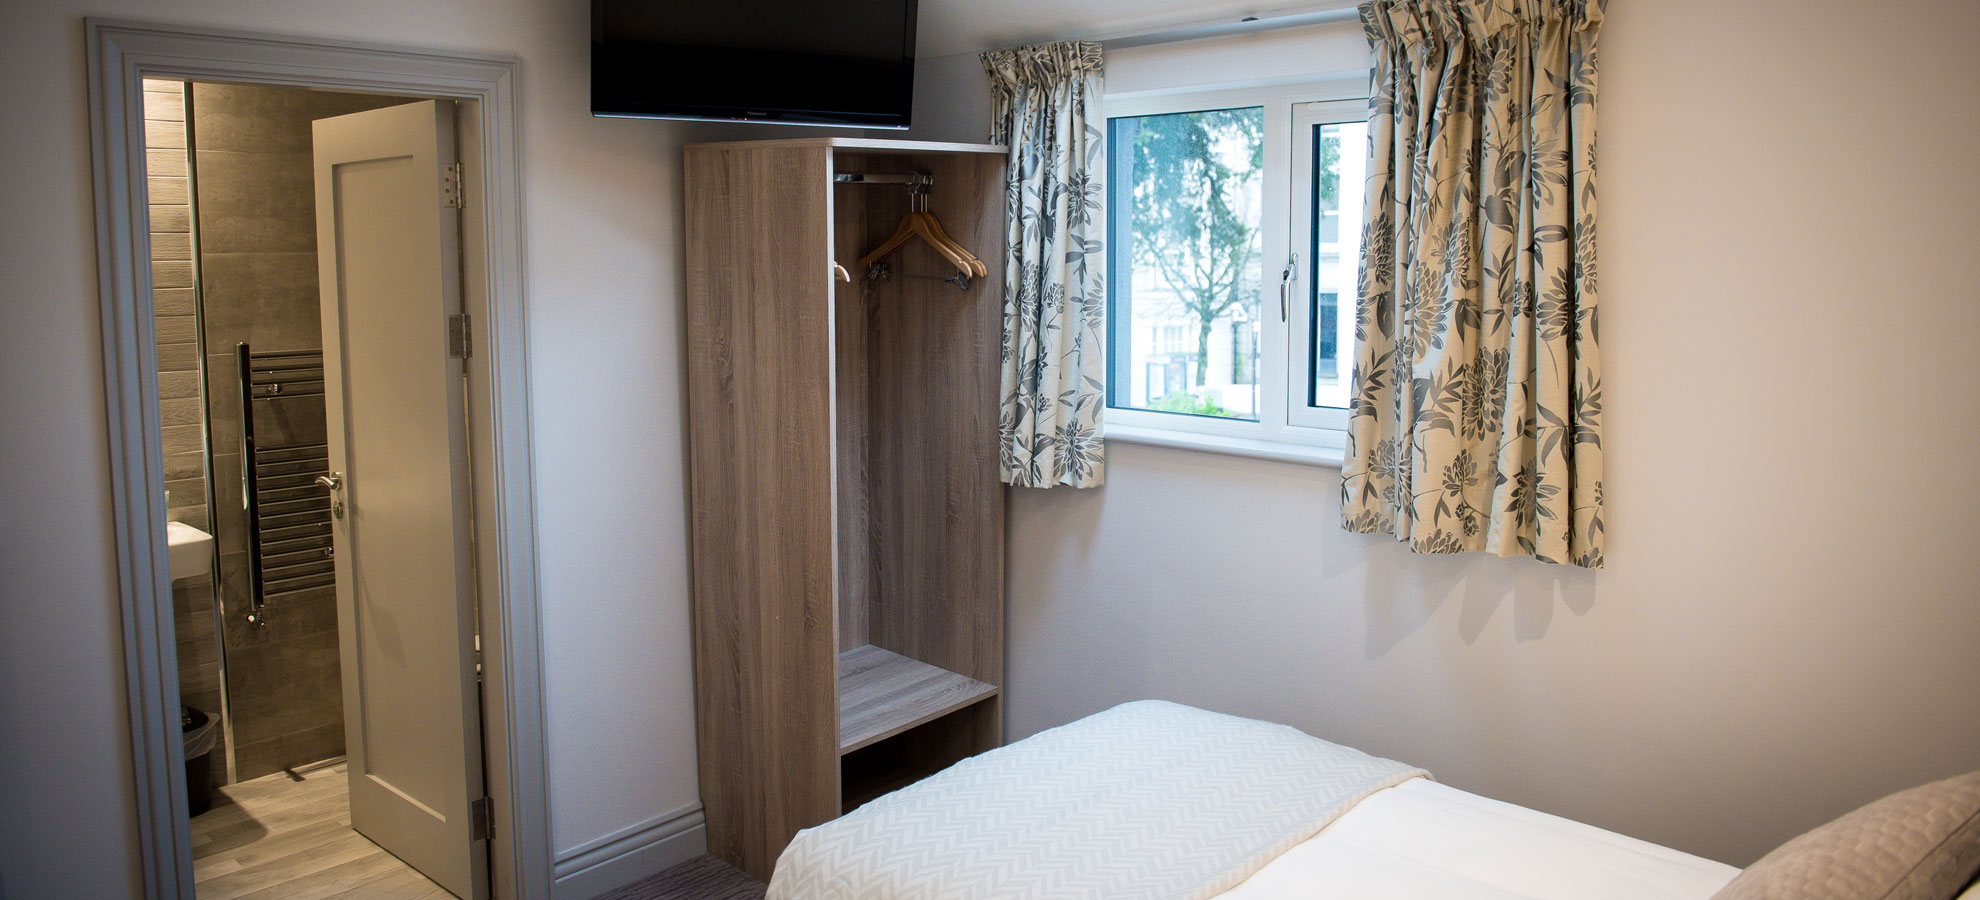 Tatler Jack Accommodation Killarney